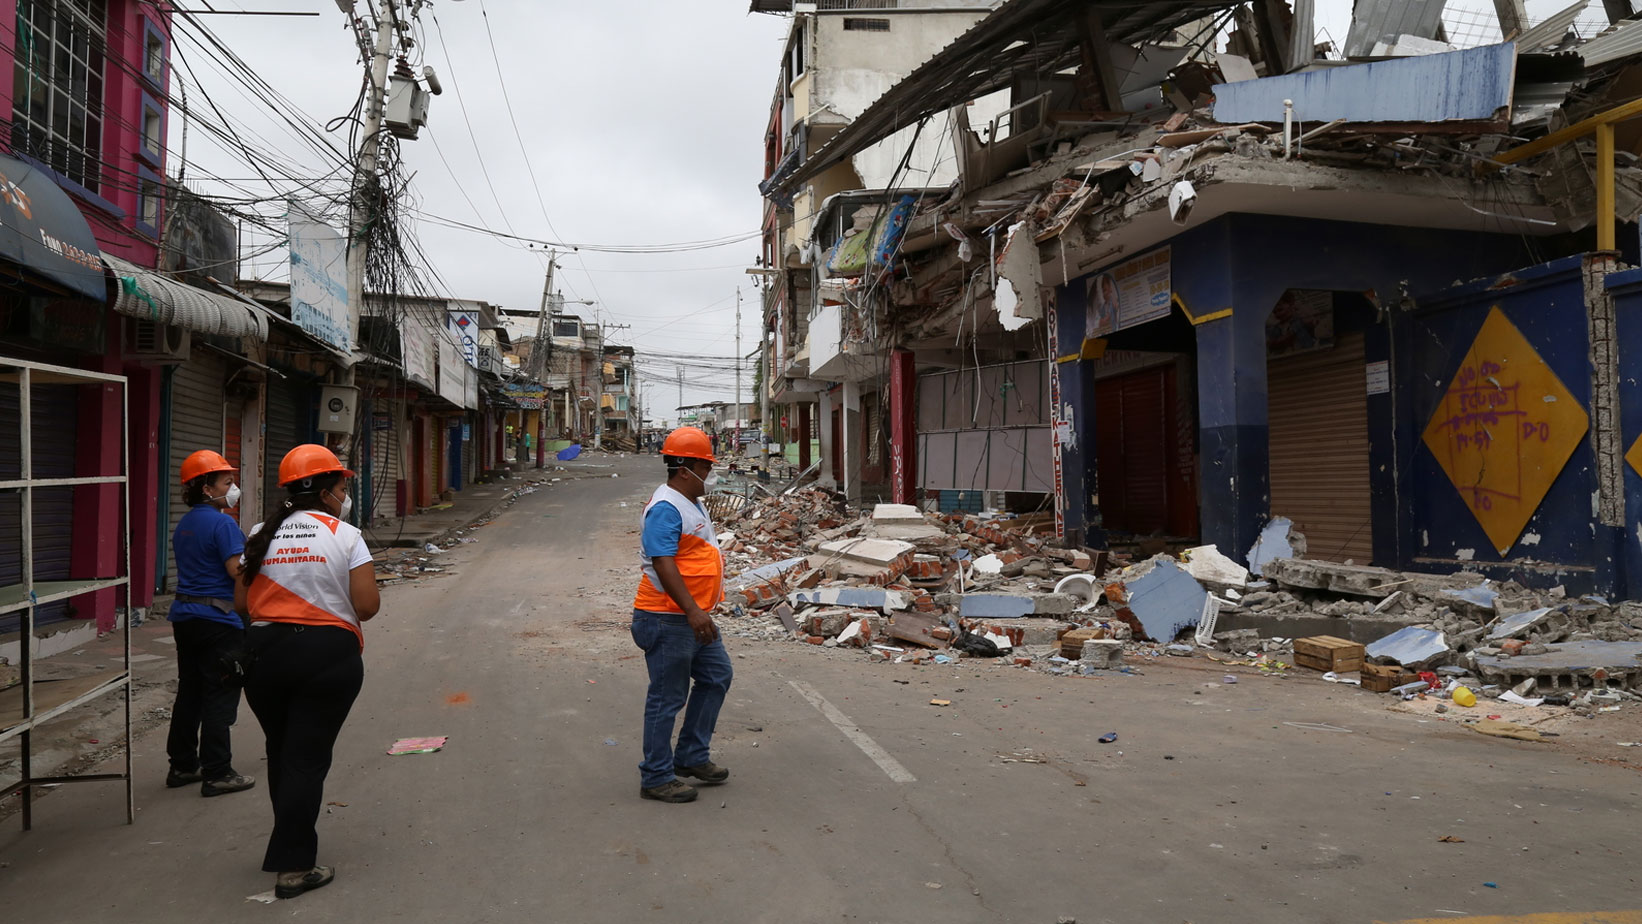 After the 2016 Ecuador earthquake, World Vision staff assess damage in a business district of Manta, a major port city. (©2016 World Vision/photo by Diego Rivadeneira)